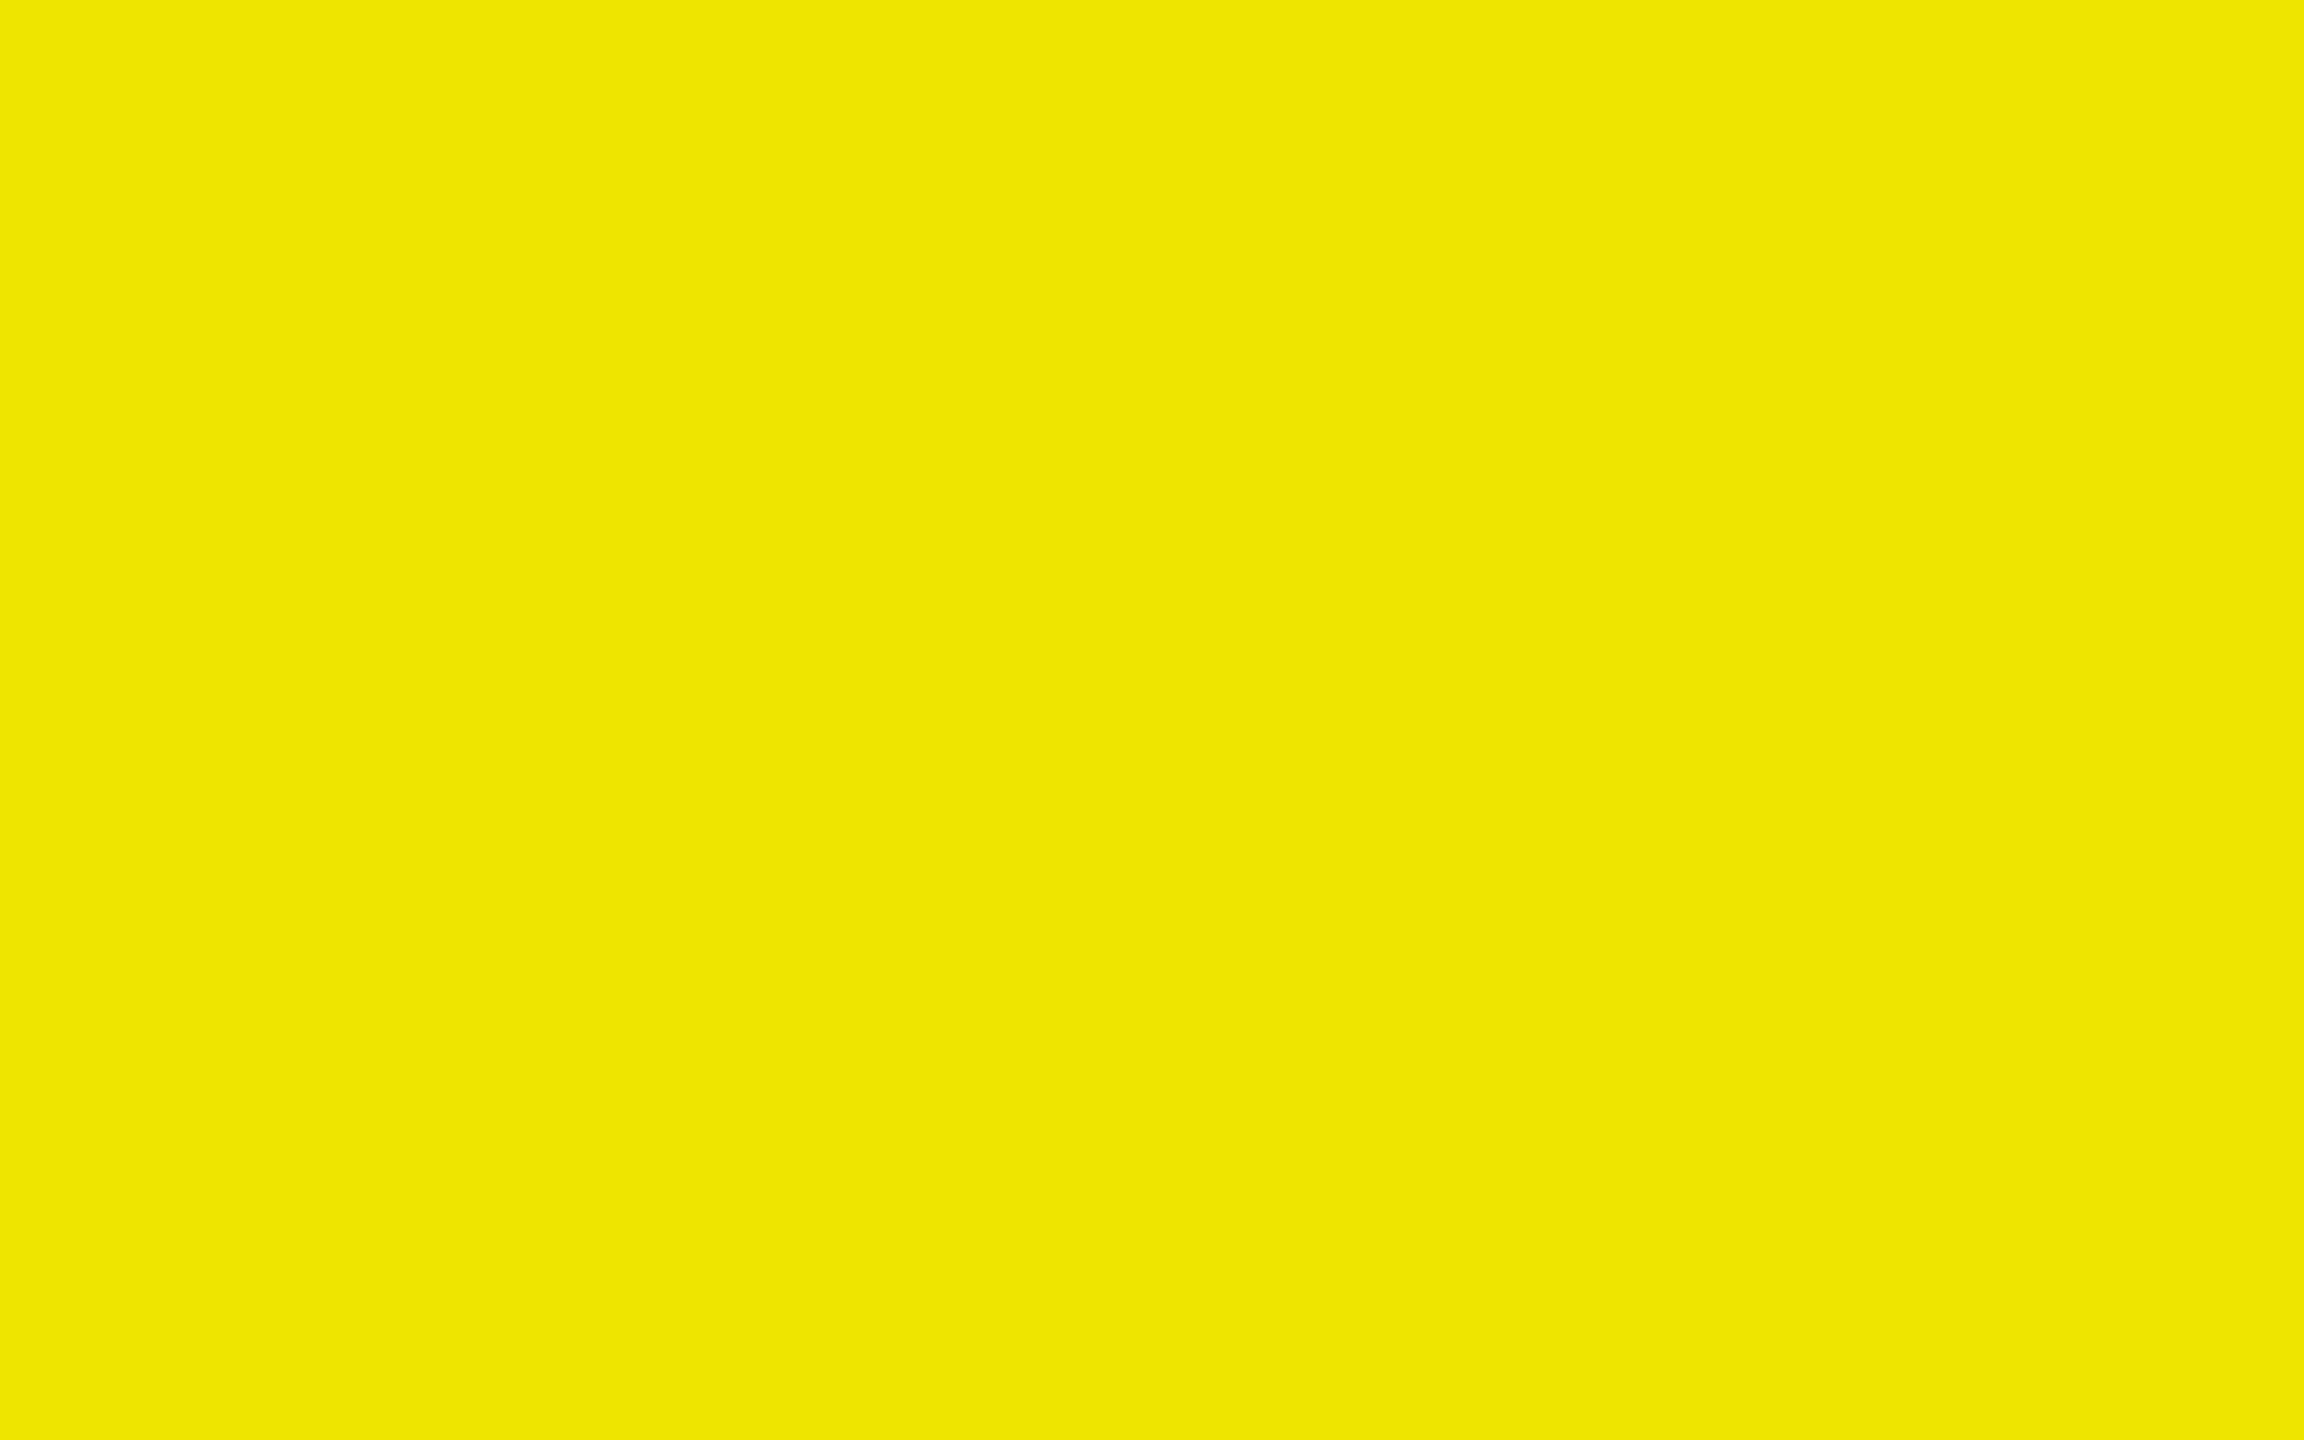 2304x1440 Titanium Yellow Solid Color Background